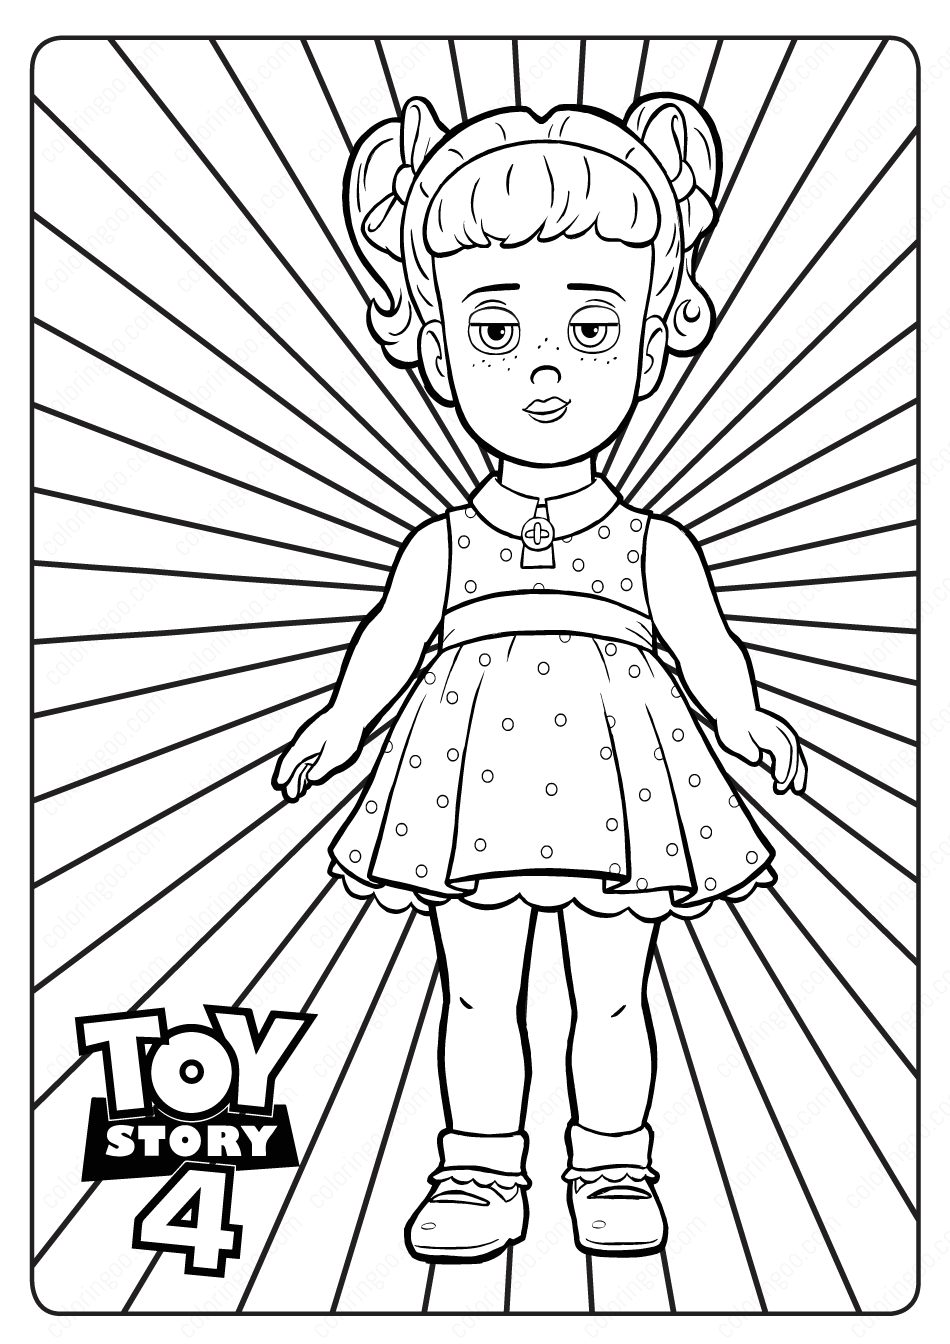 Free Printable Toy Story 4 Gabby Gabby PDF Coloring Page